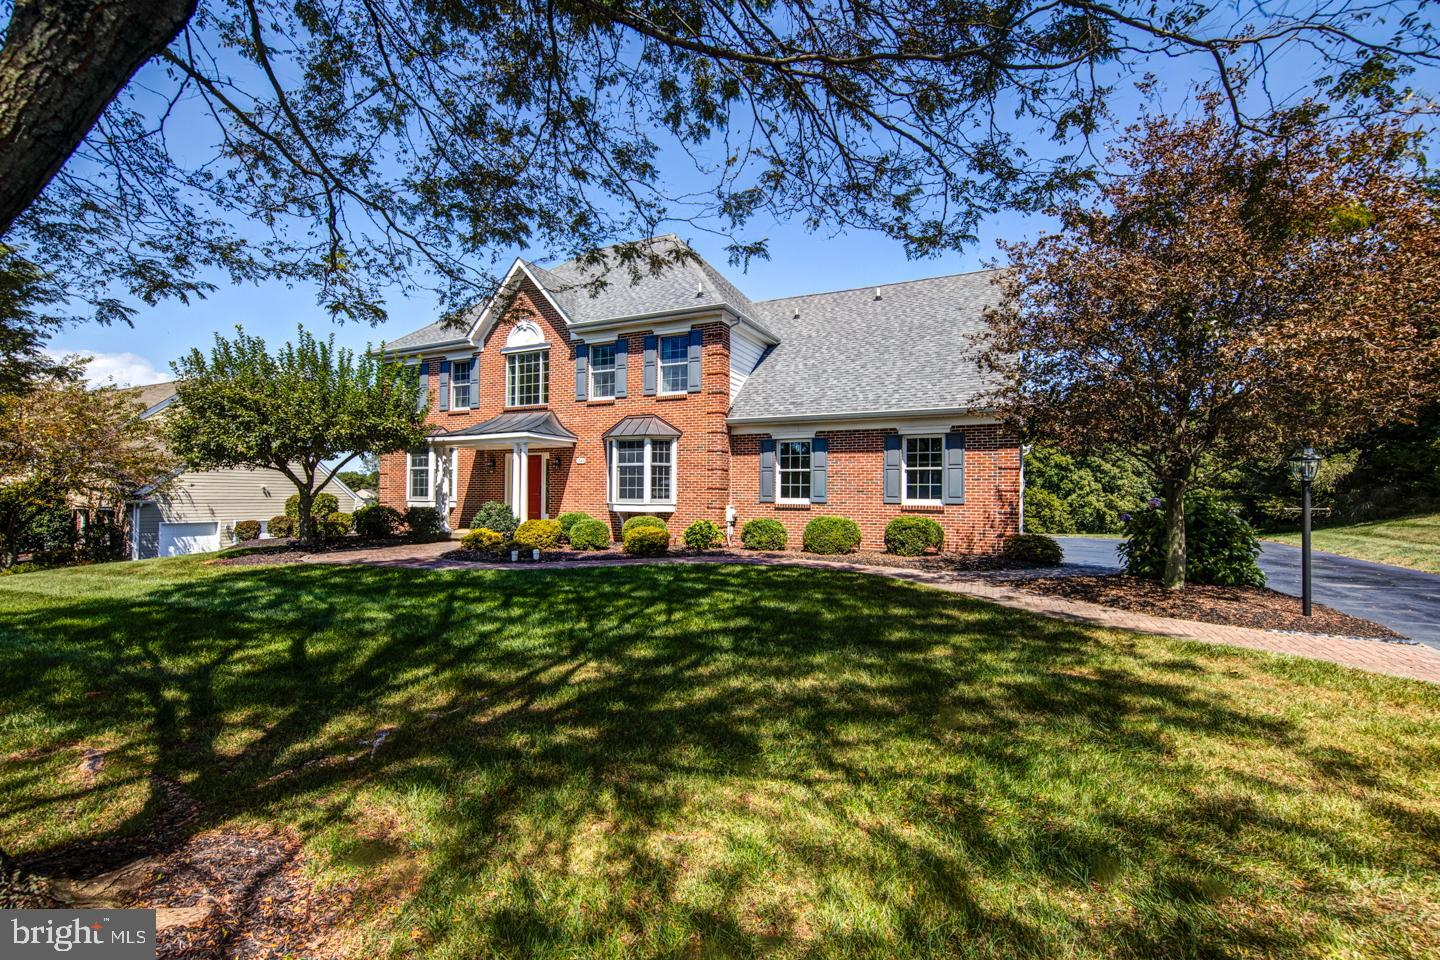 1740 TOWNE DRIVE, WEST CHESTER, PA 19380